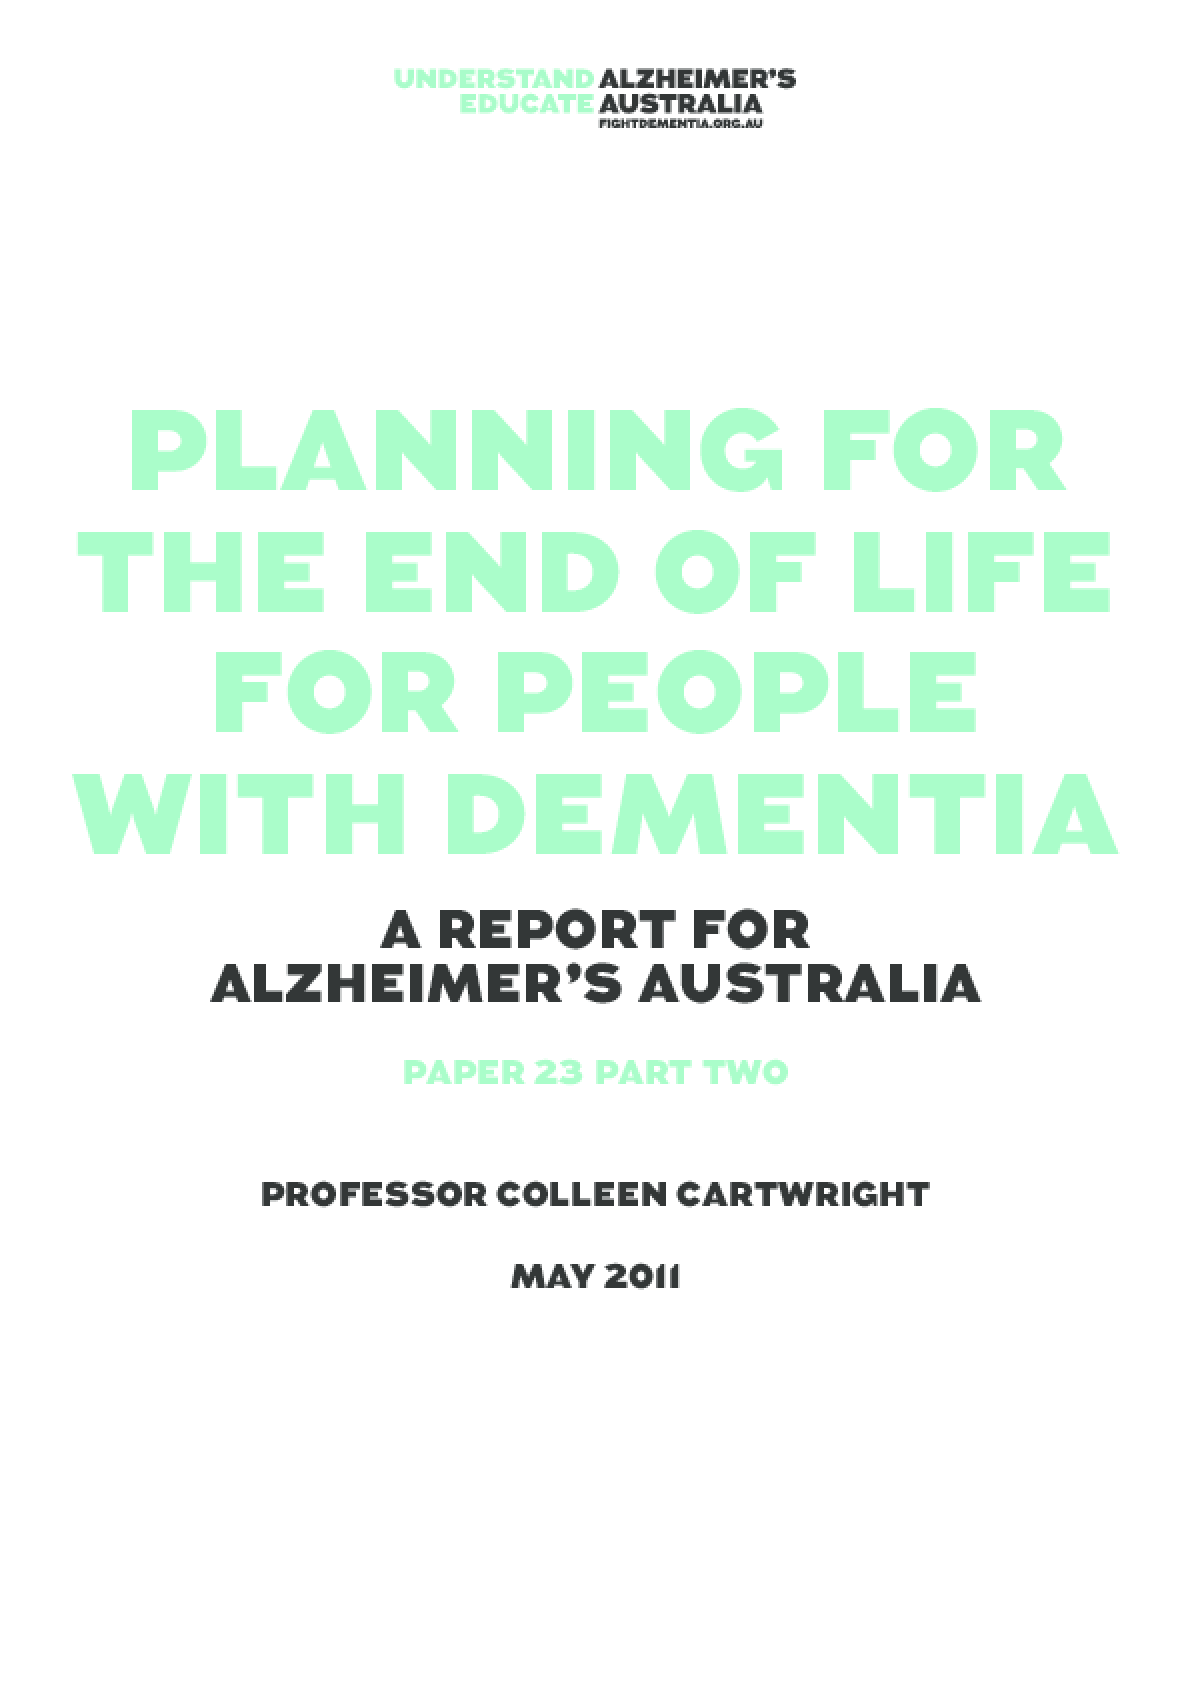 Planning for the End of Life for People with Dementia - Part 2